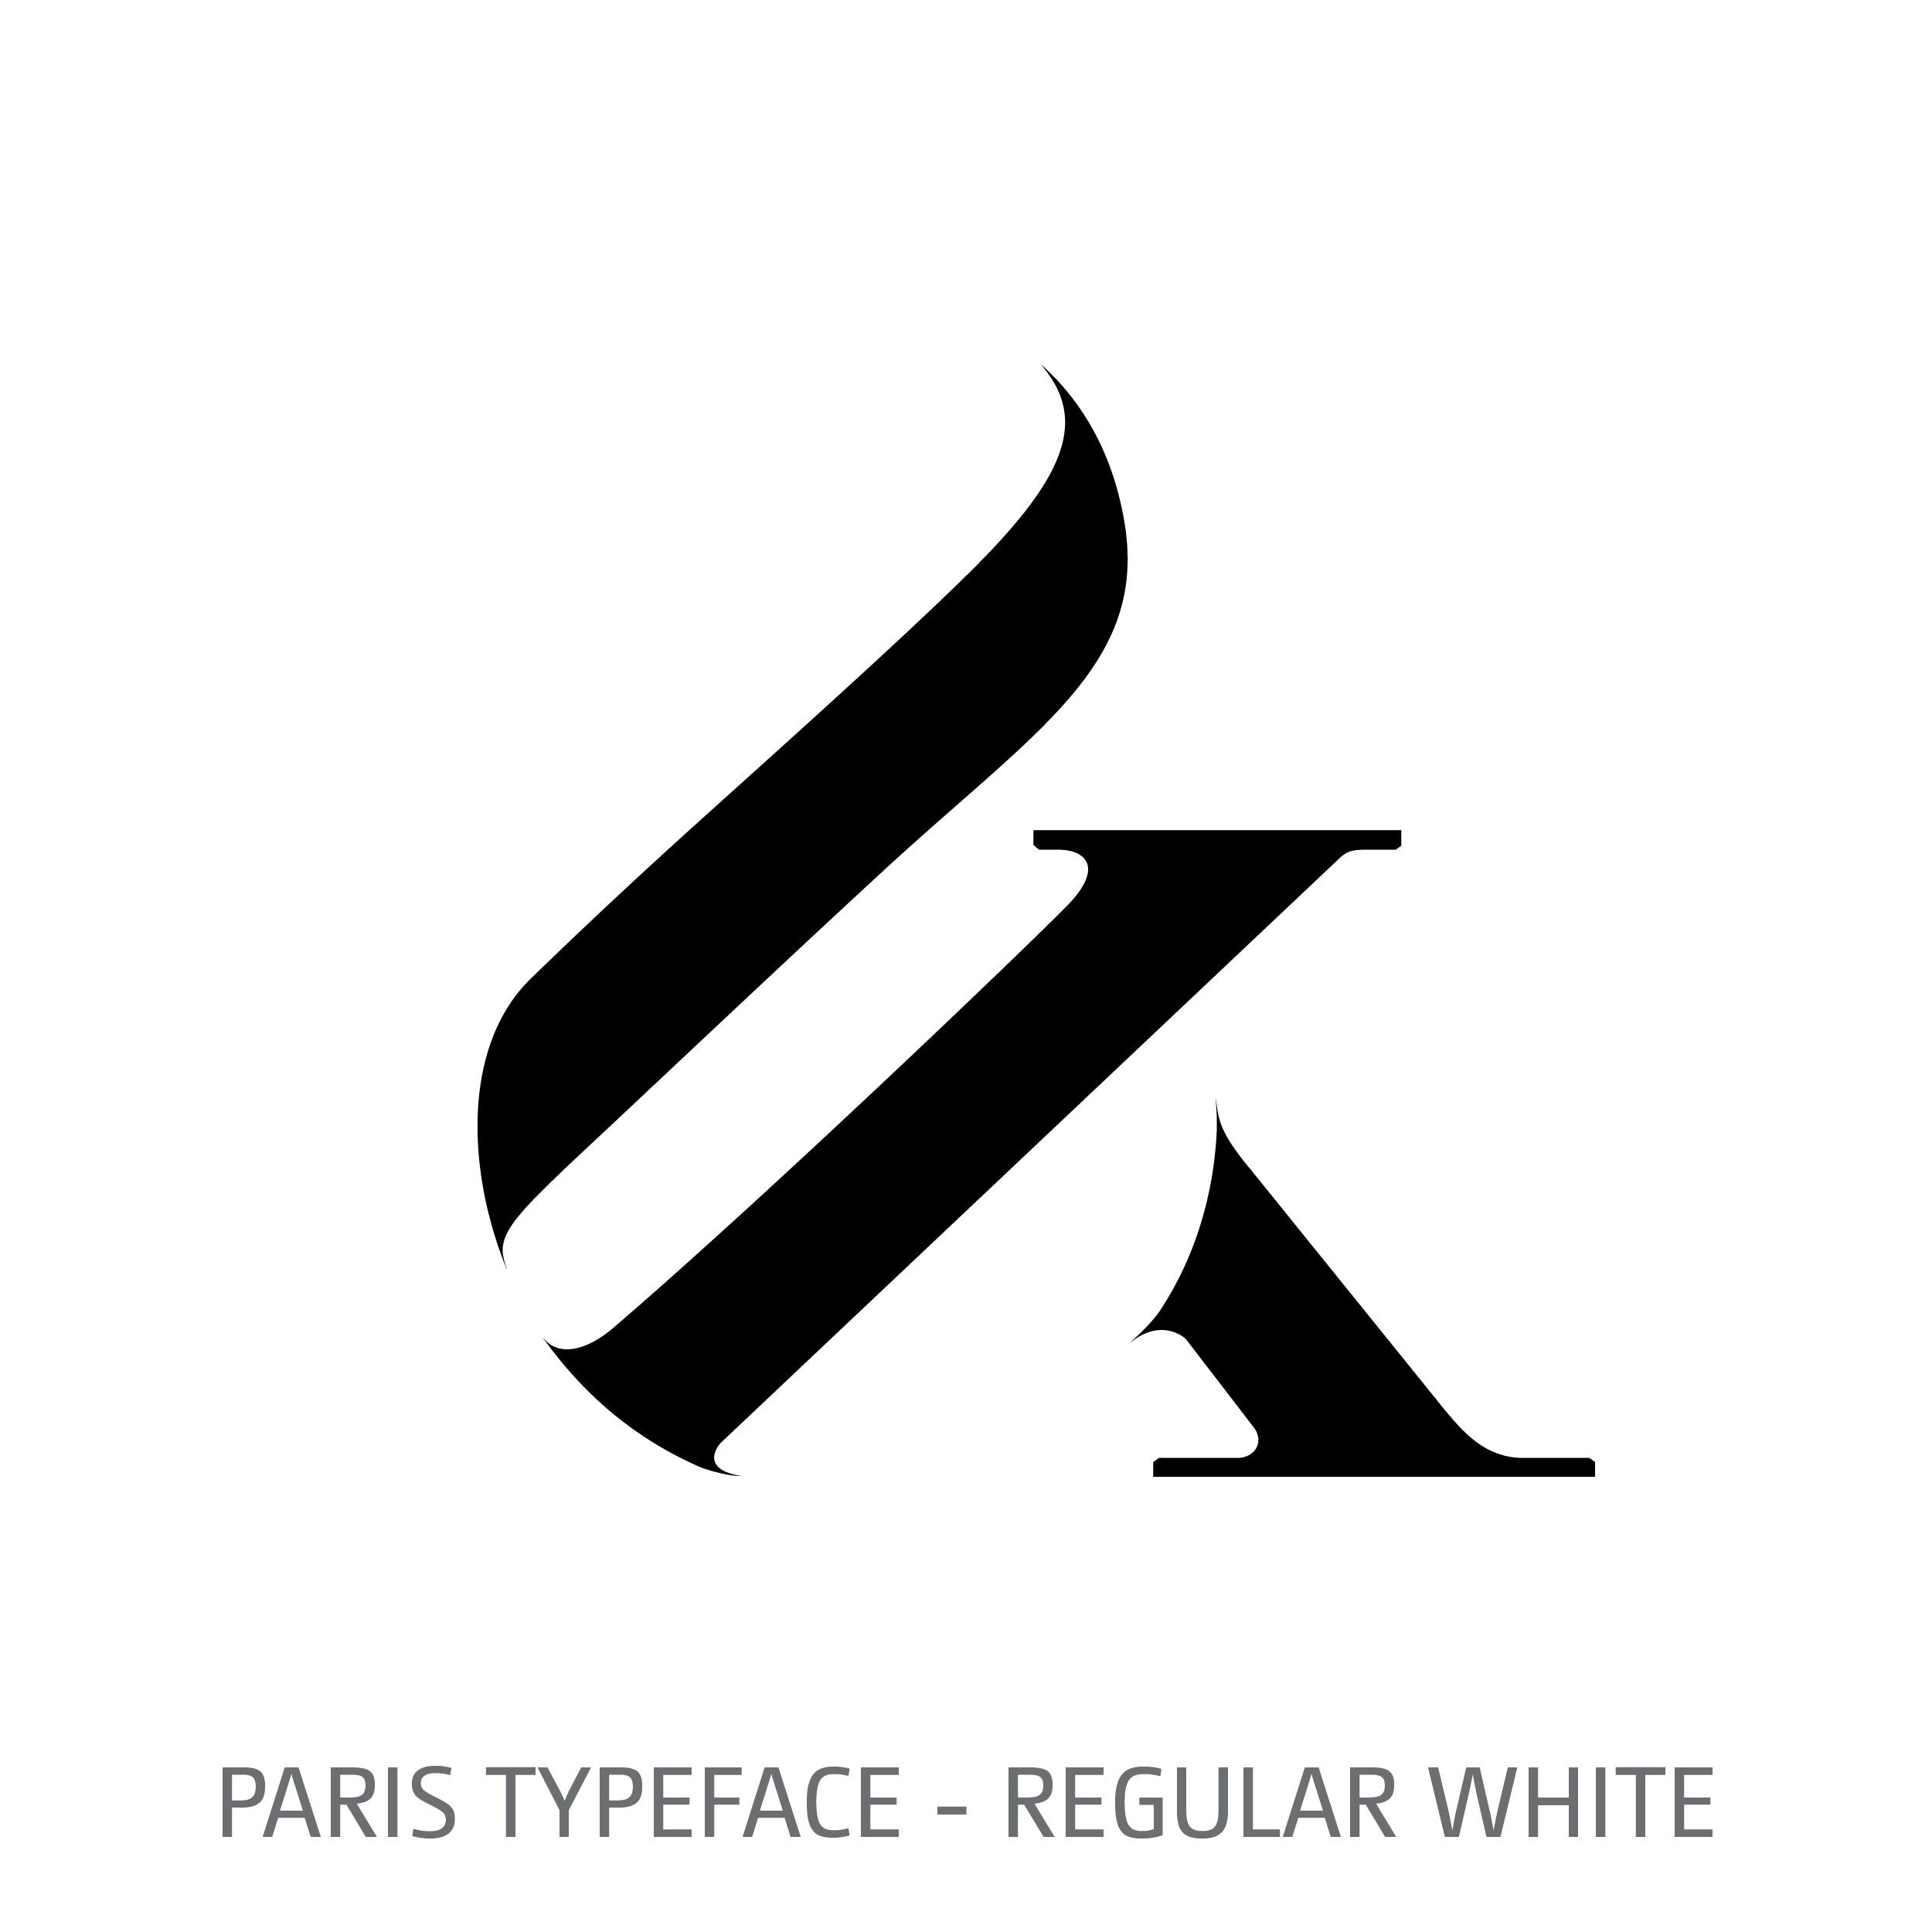 Paris Typeface Regular White Style